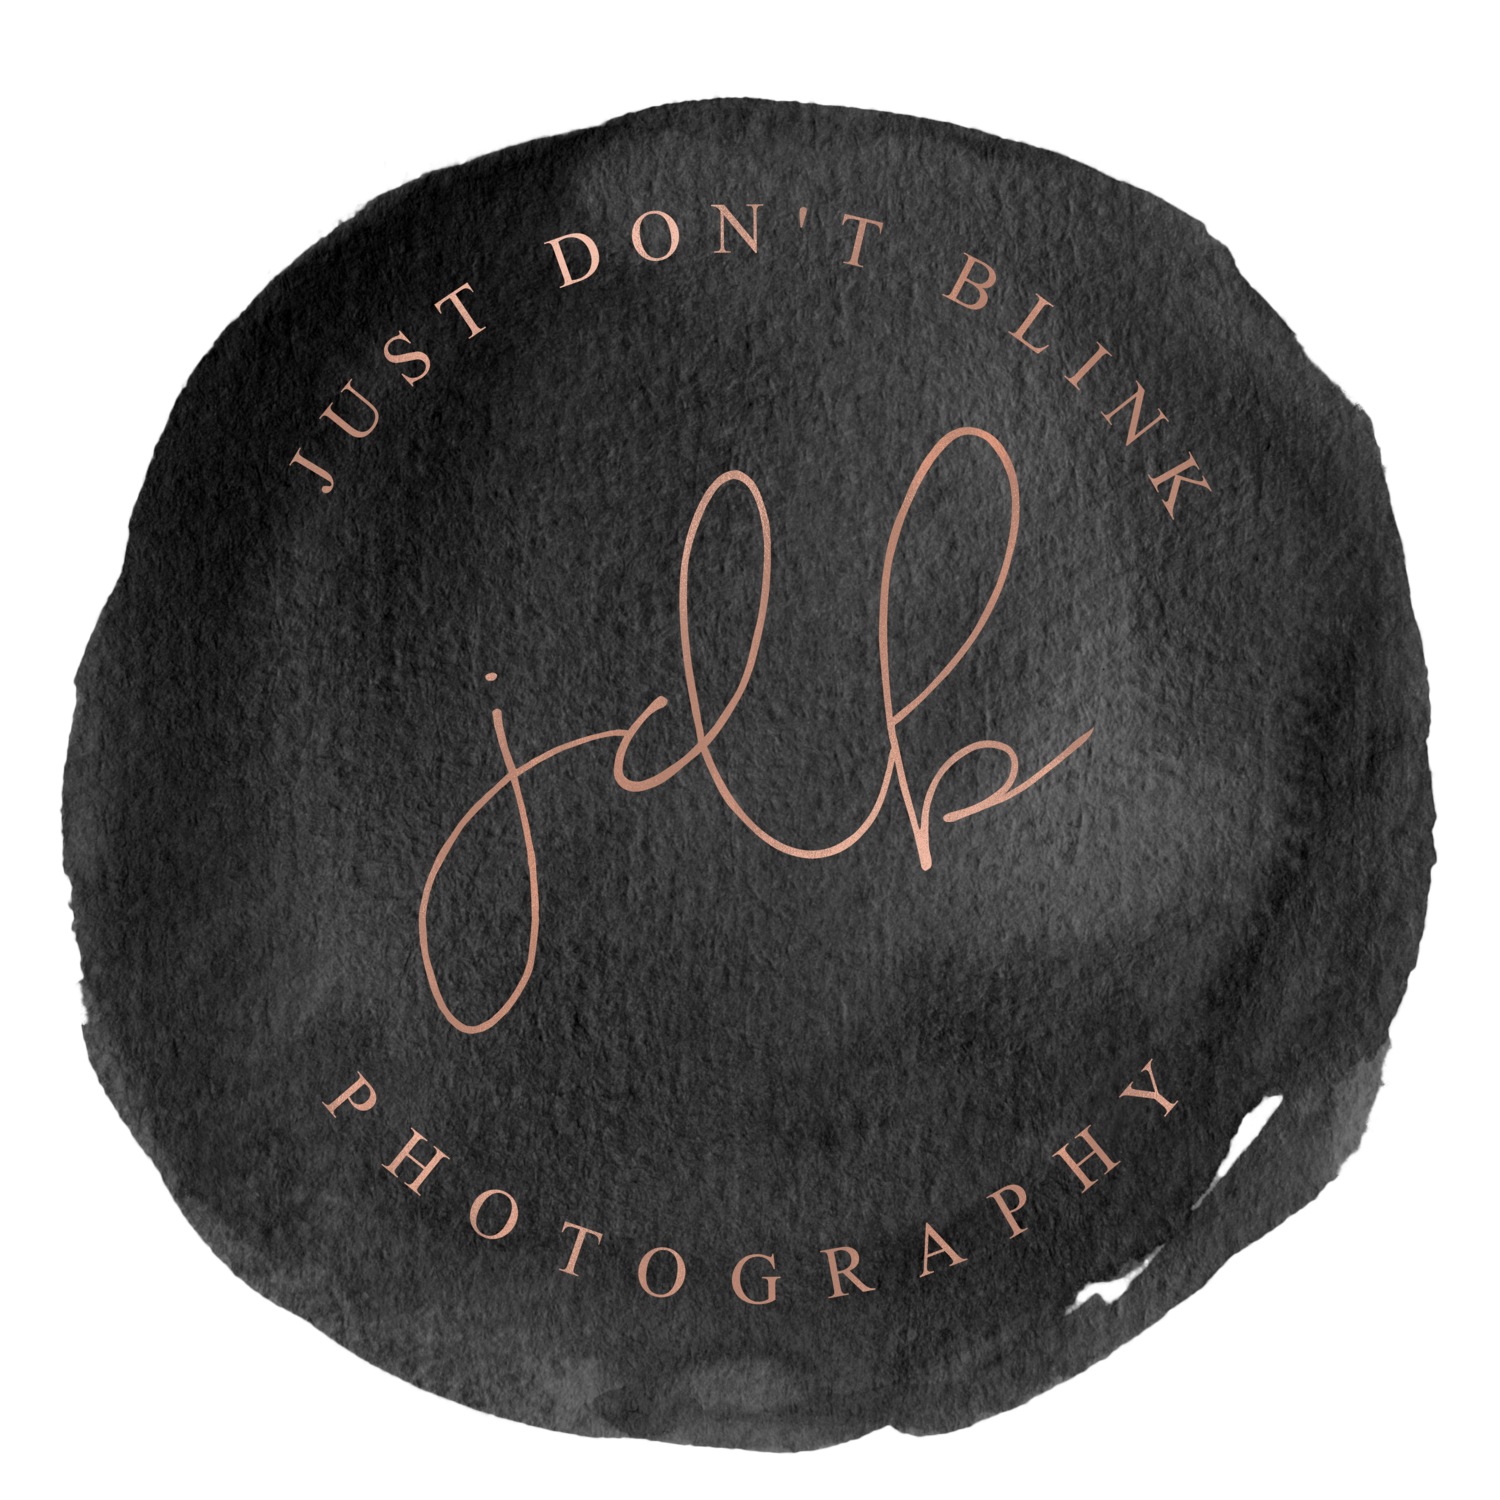 Just Don't Blink Photography